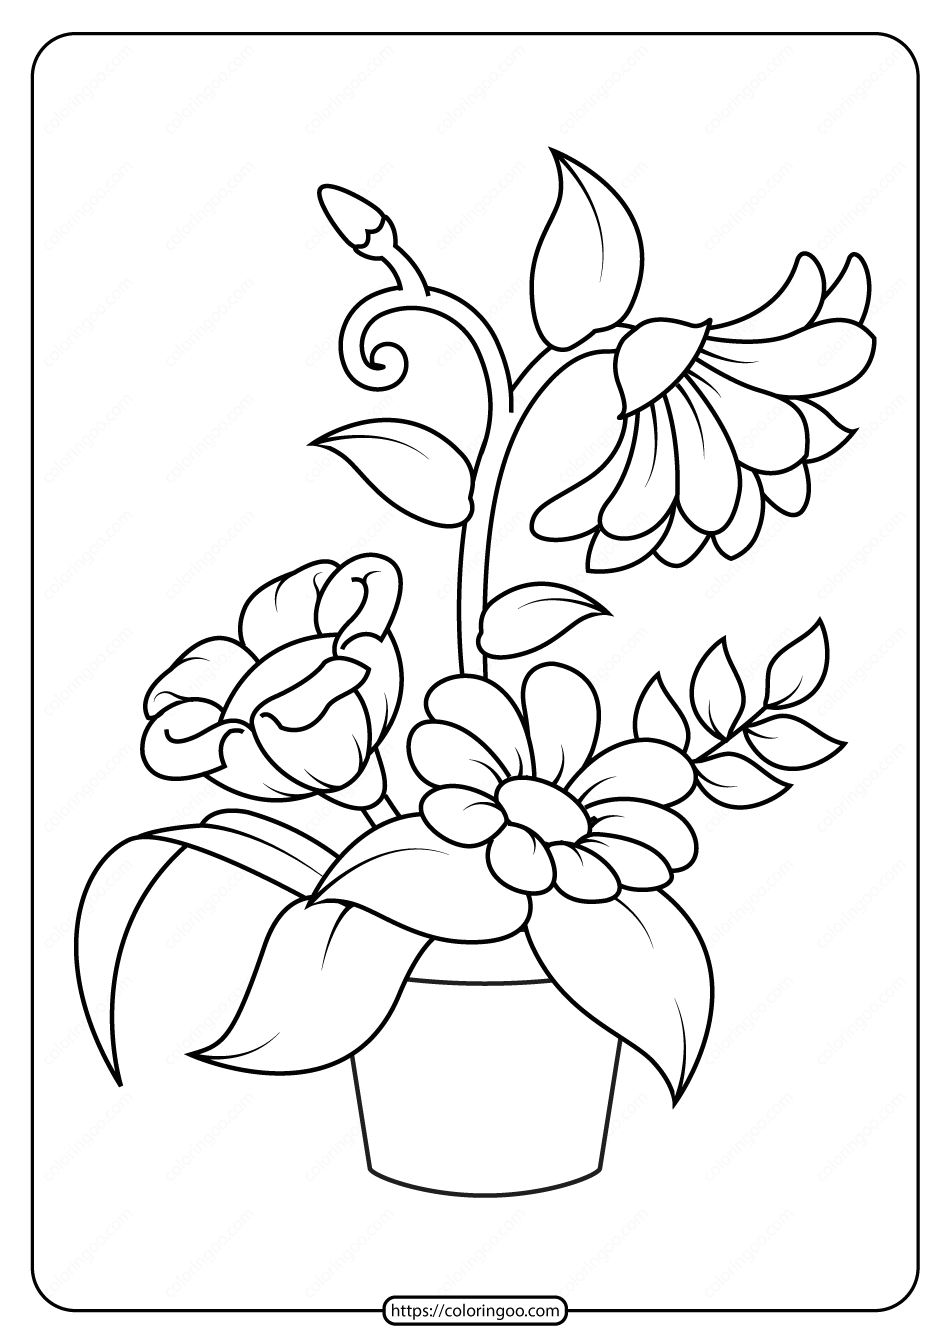 flowers color pages spring flower coloring pages ideas for kids stpetefestorg color pages flowers